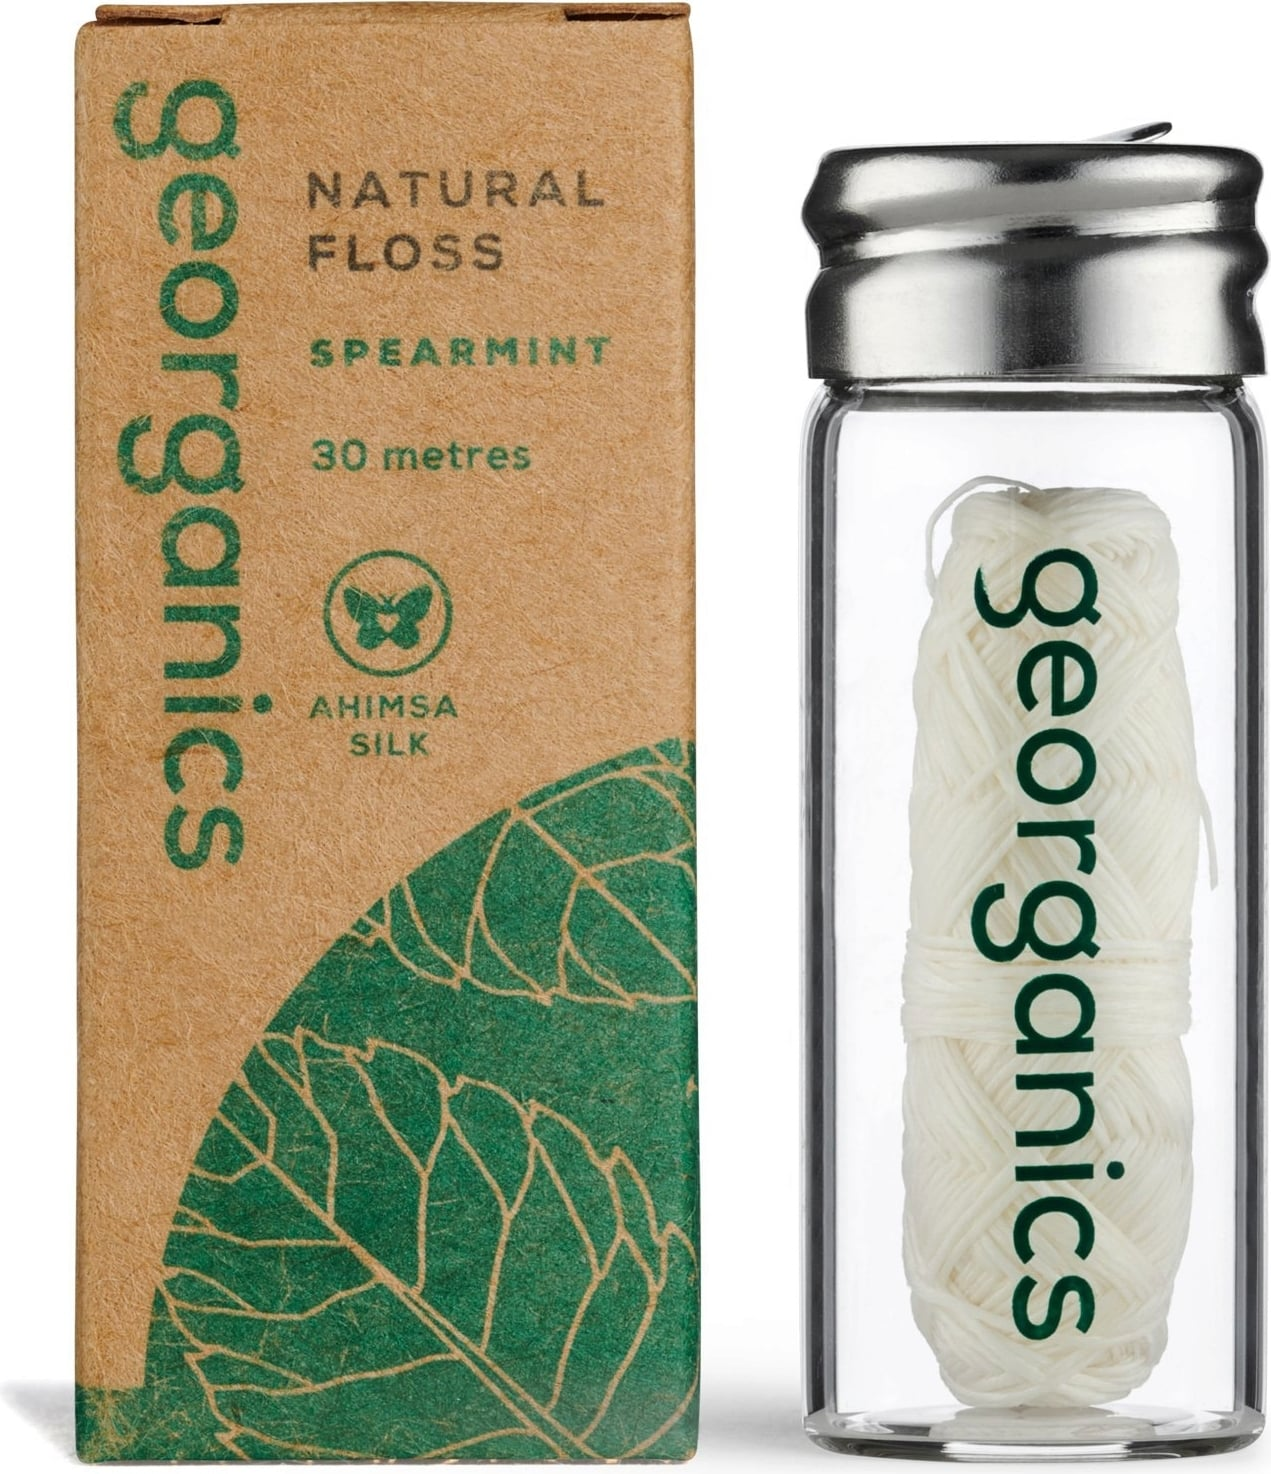 georganics-natural-floss-spearmint-1212705-en